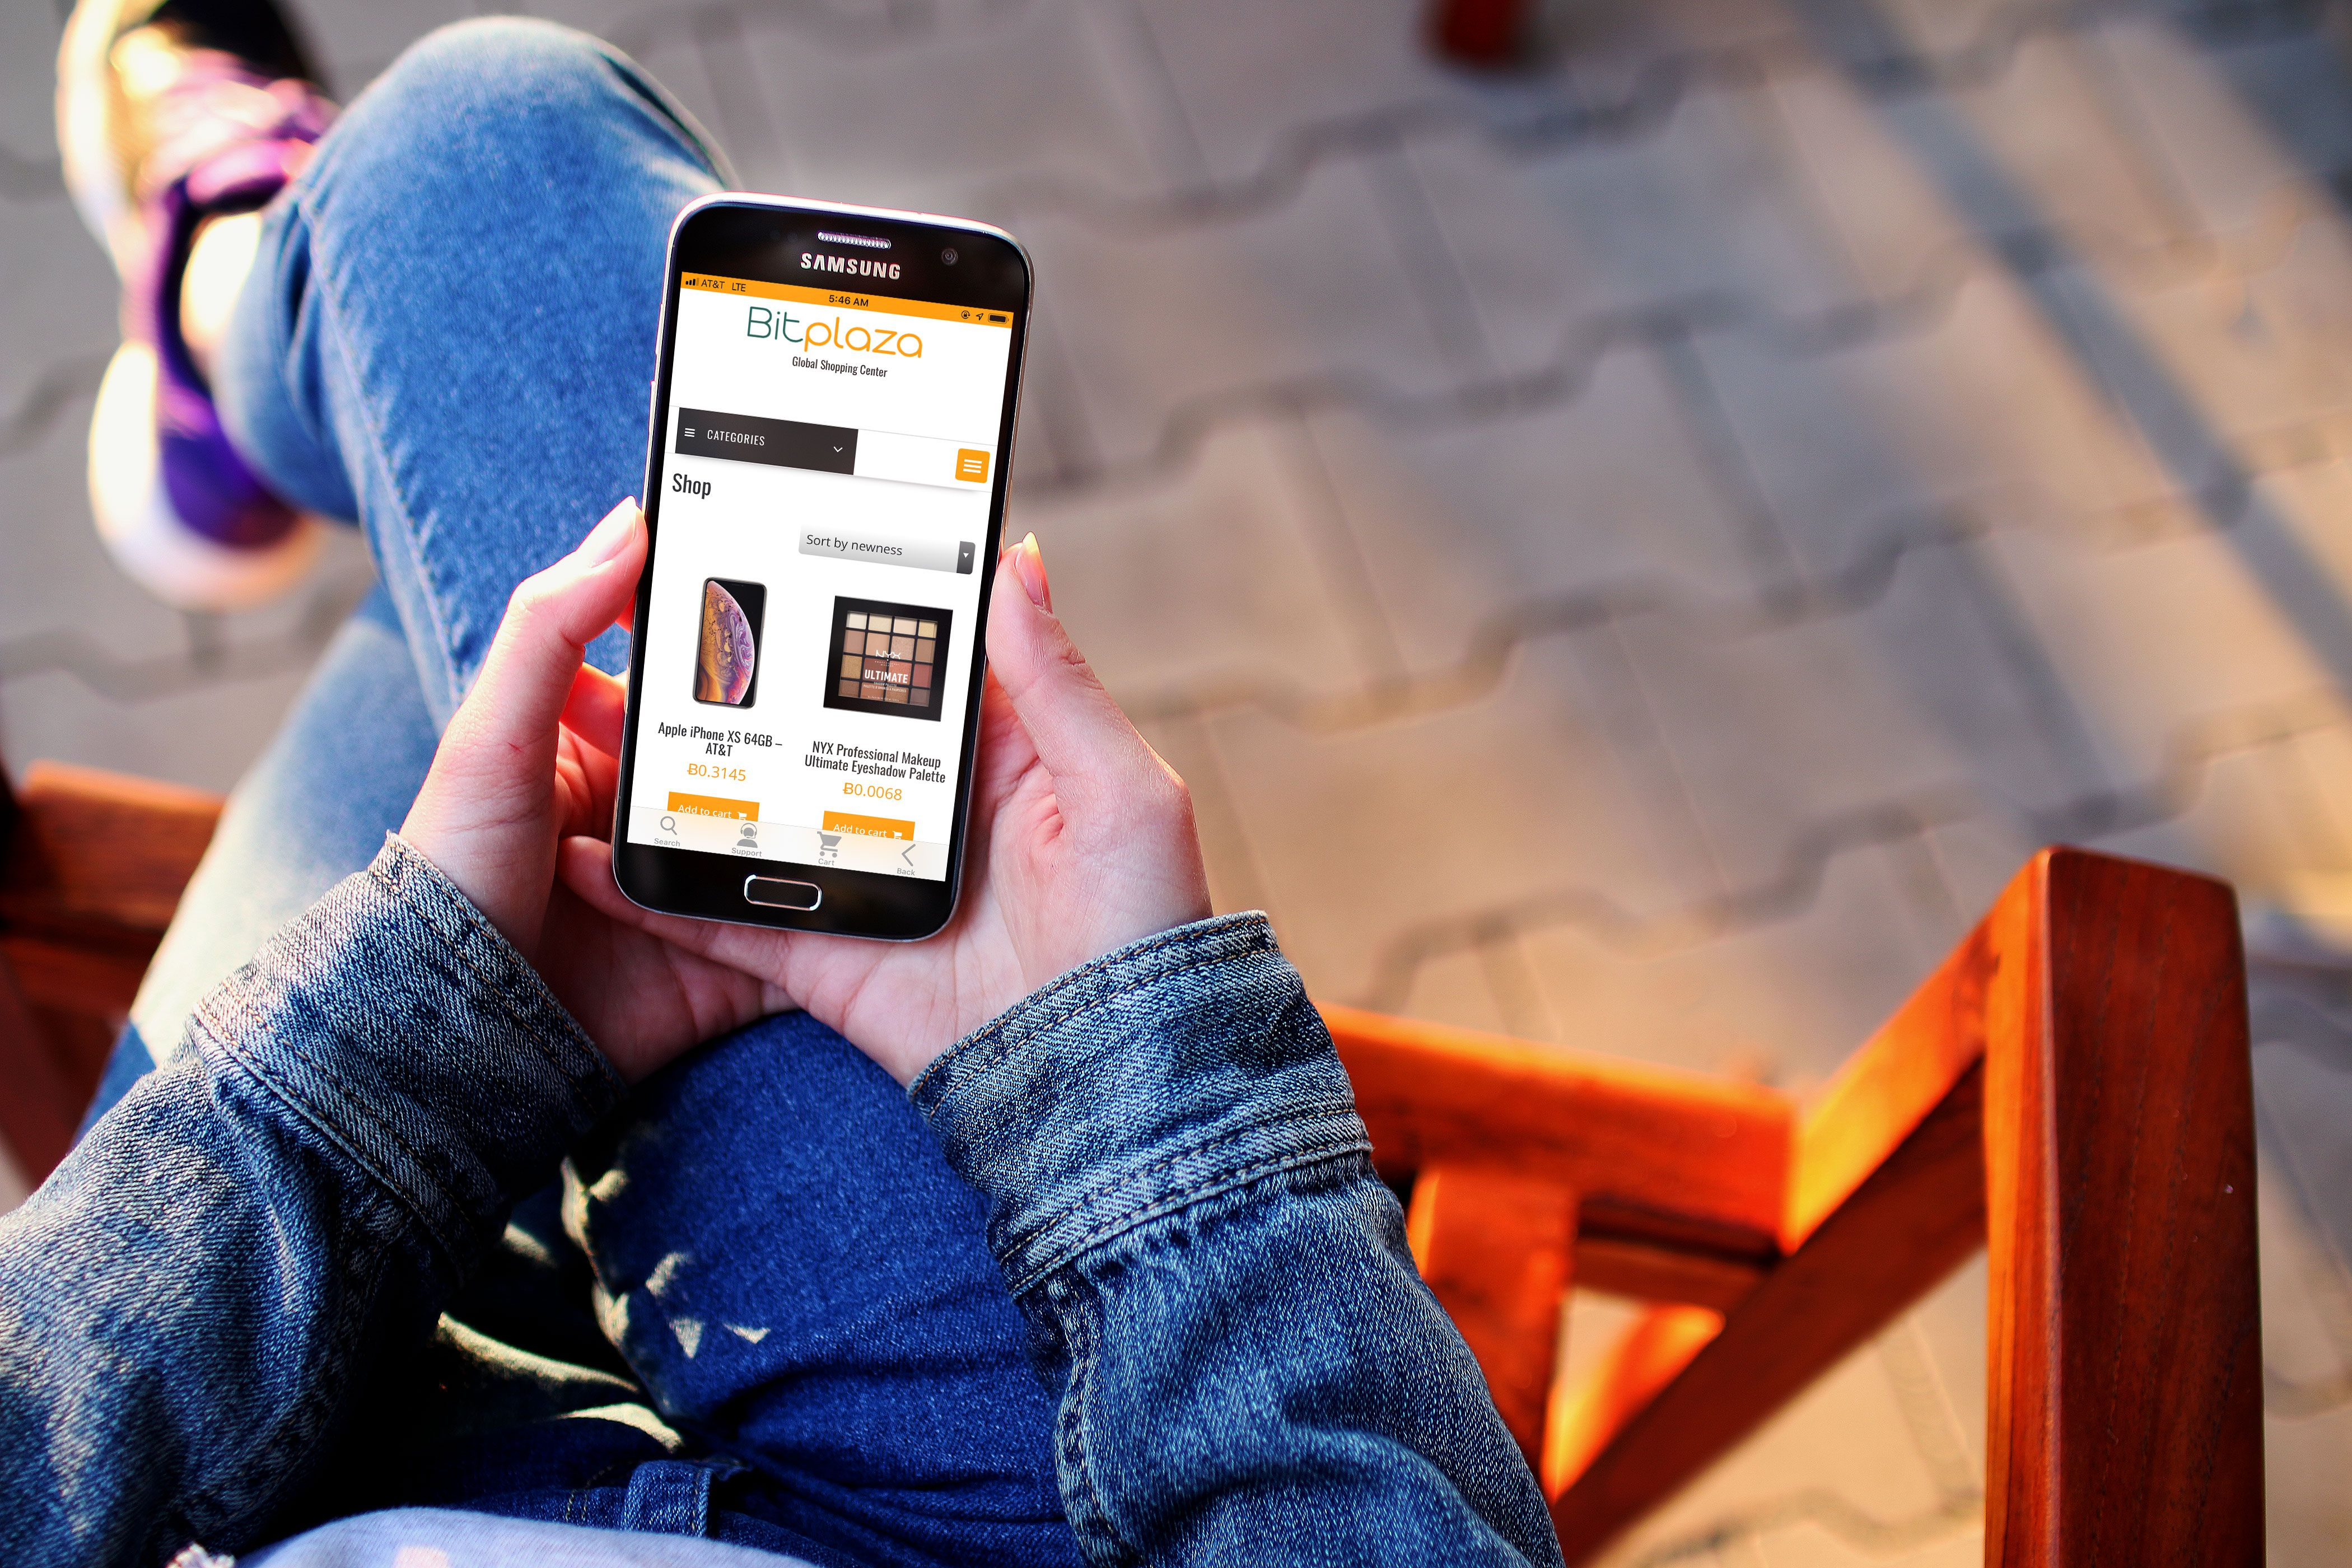 Bitplaza makes Shopping with Bitcoin Easy and Fun. The